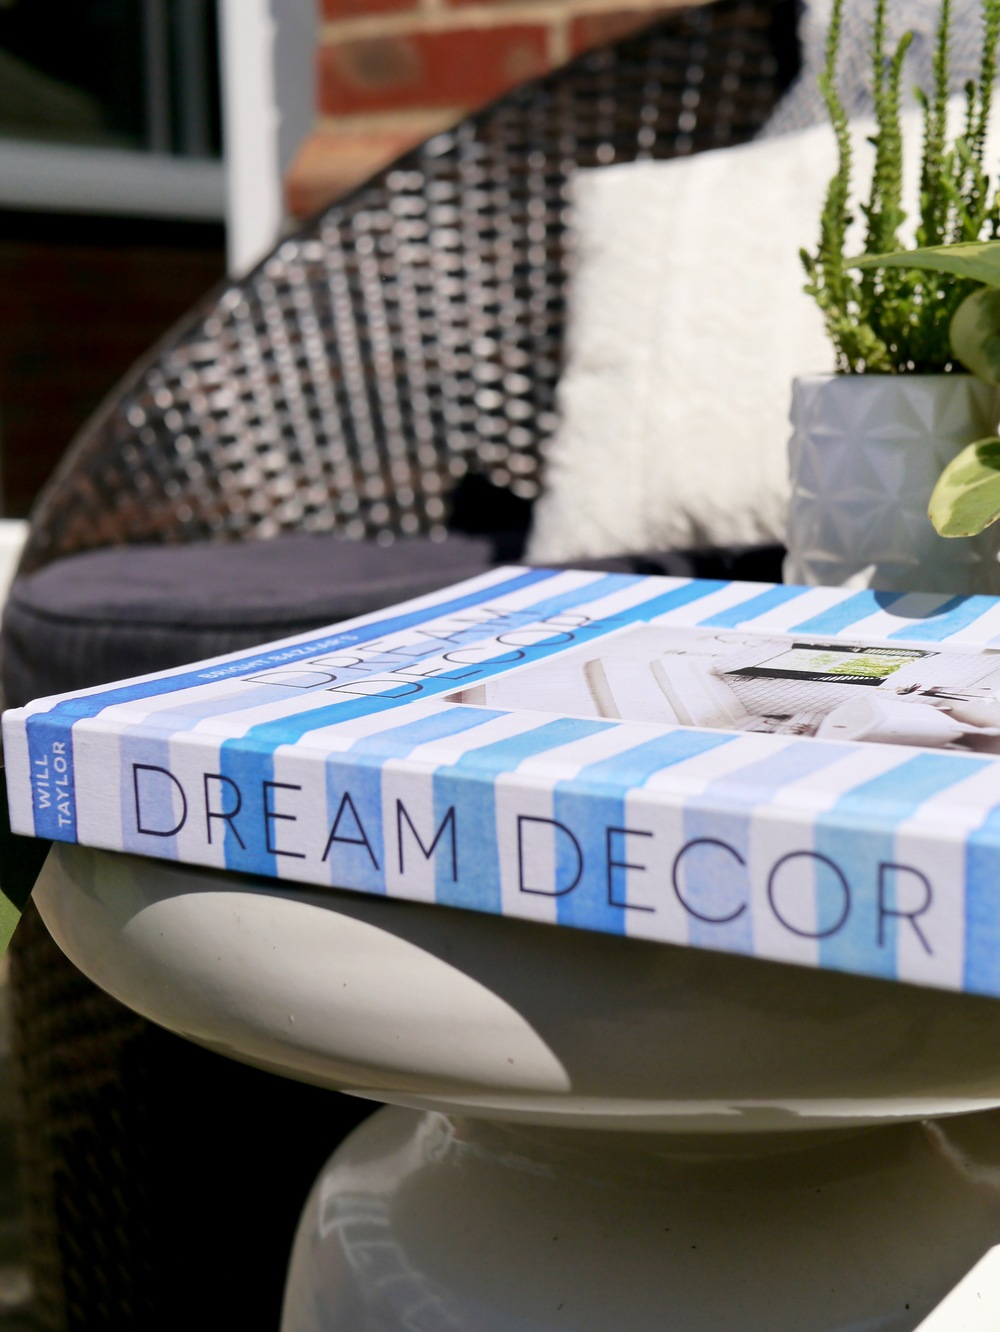 Dream Decor by Will Taylor - Smartstyle Interiors Book By My Bed Review.jpg